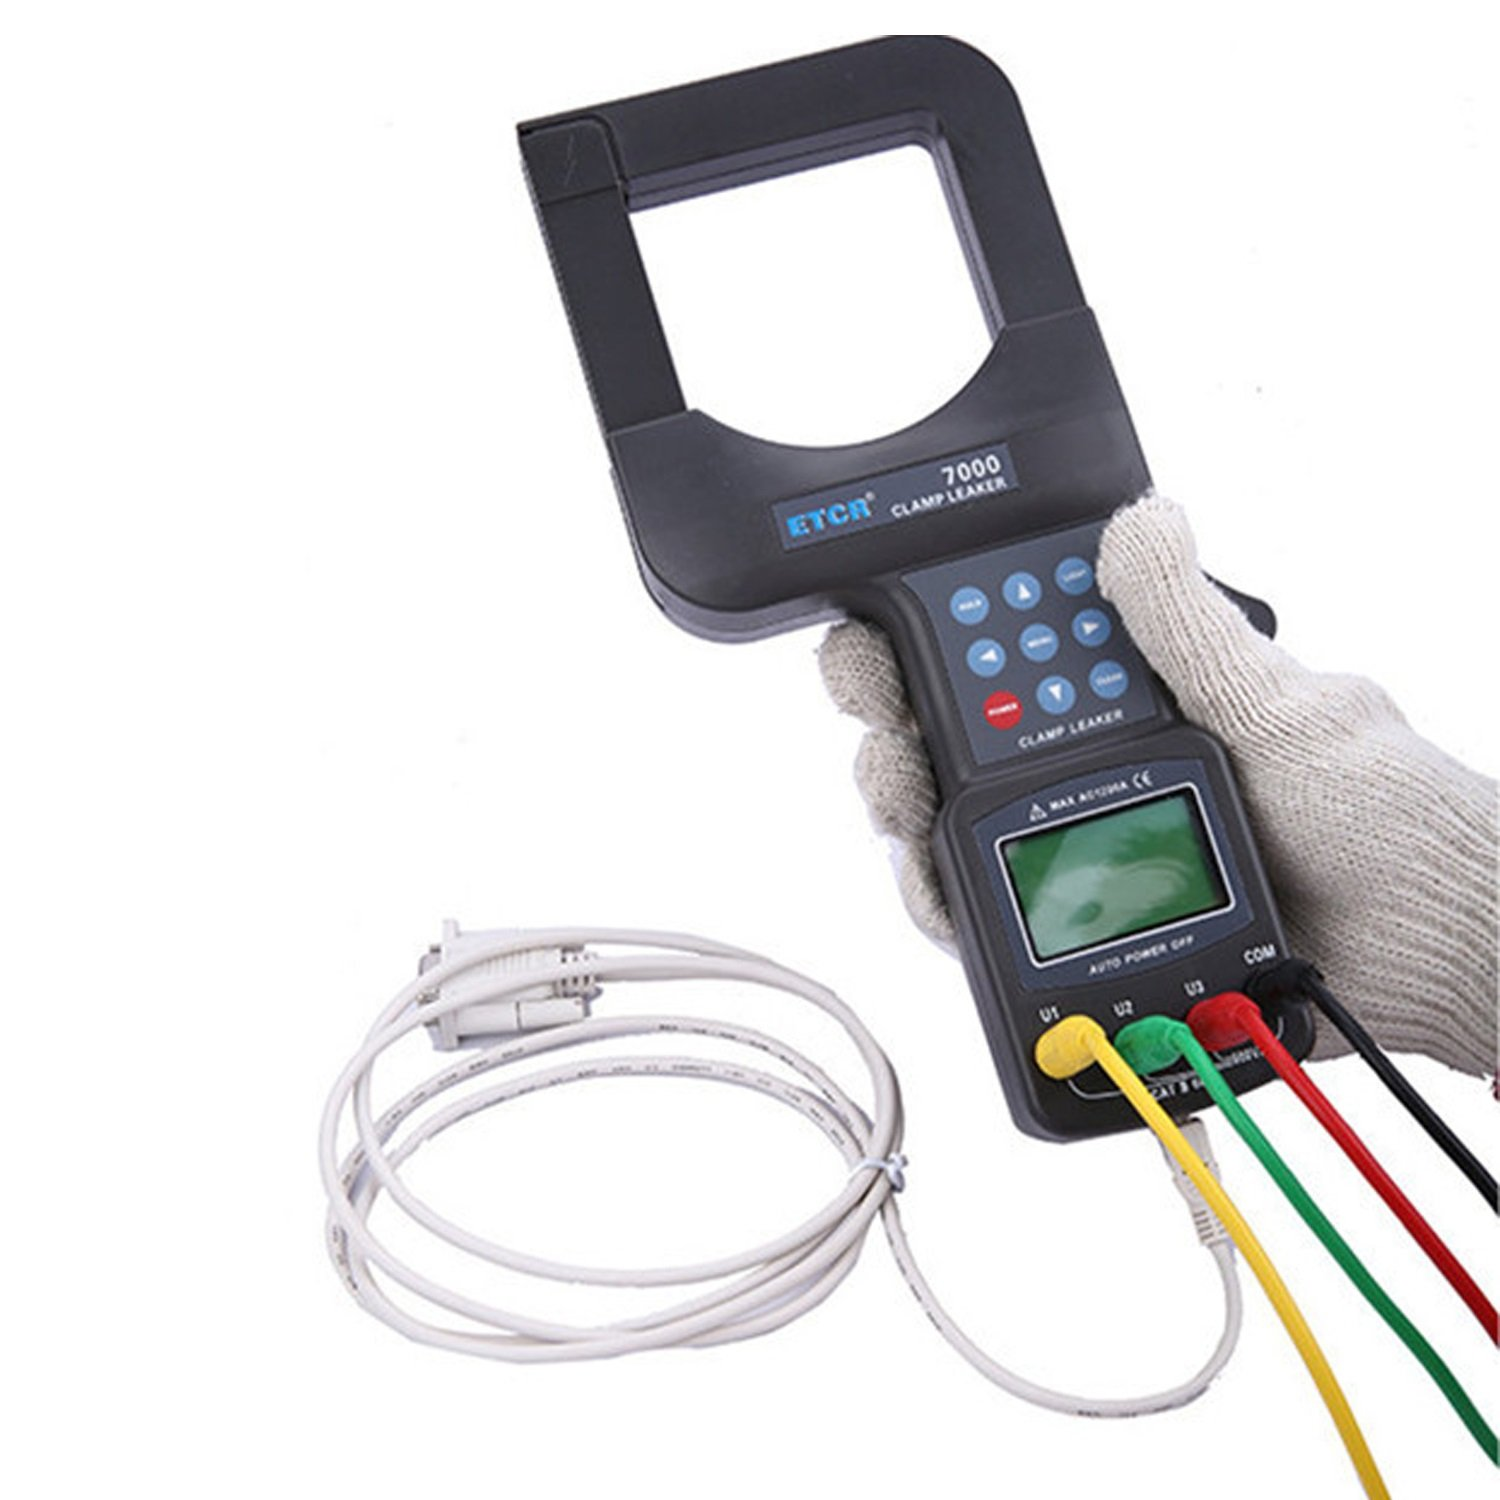 3 phase digital voltmeter with large diameter AC Leakage Current Clamp Meter RS232 Interface 99 Data Storage ETCR7000